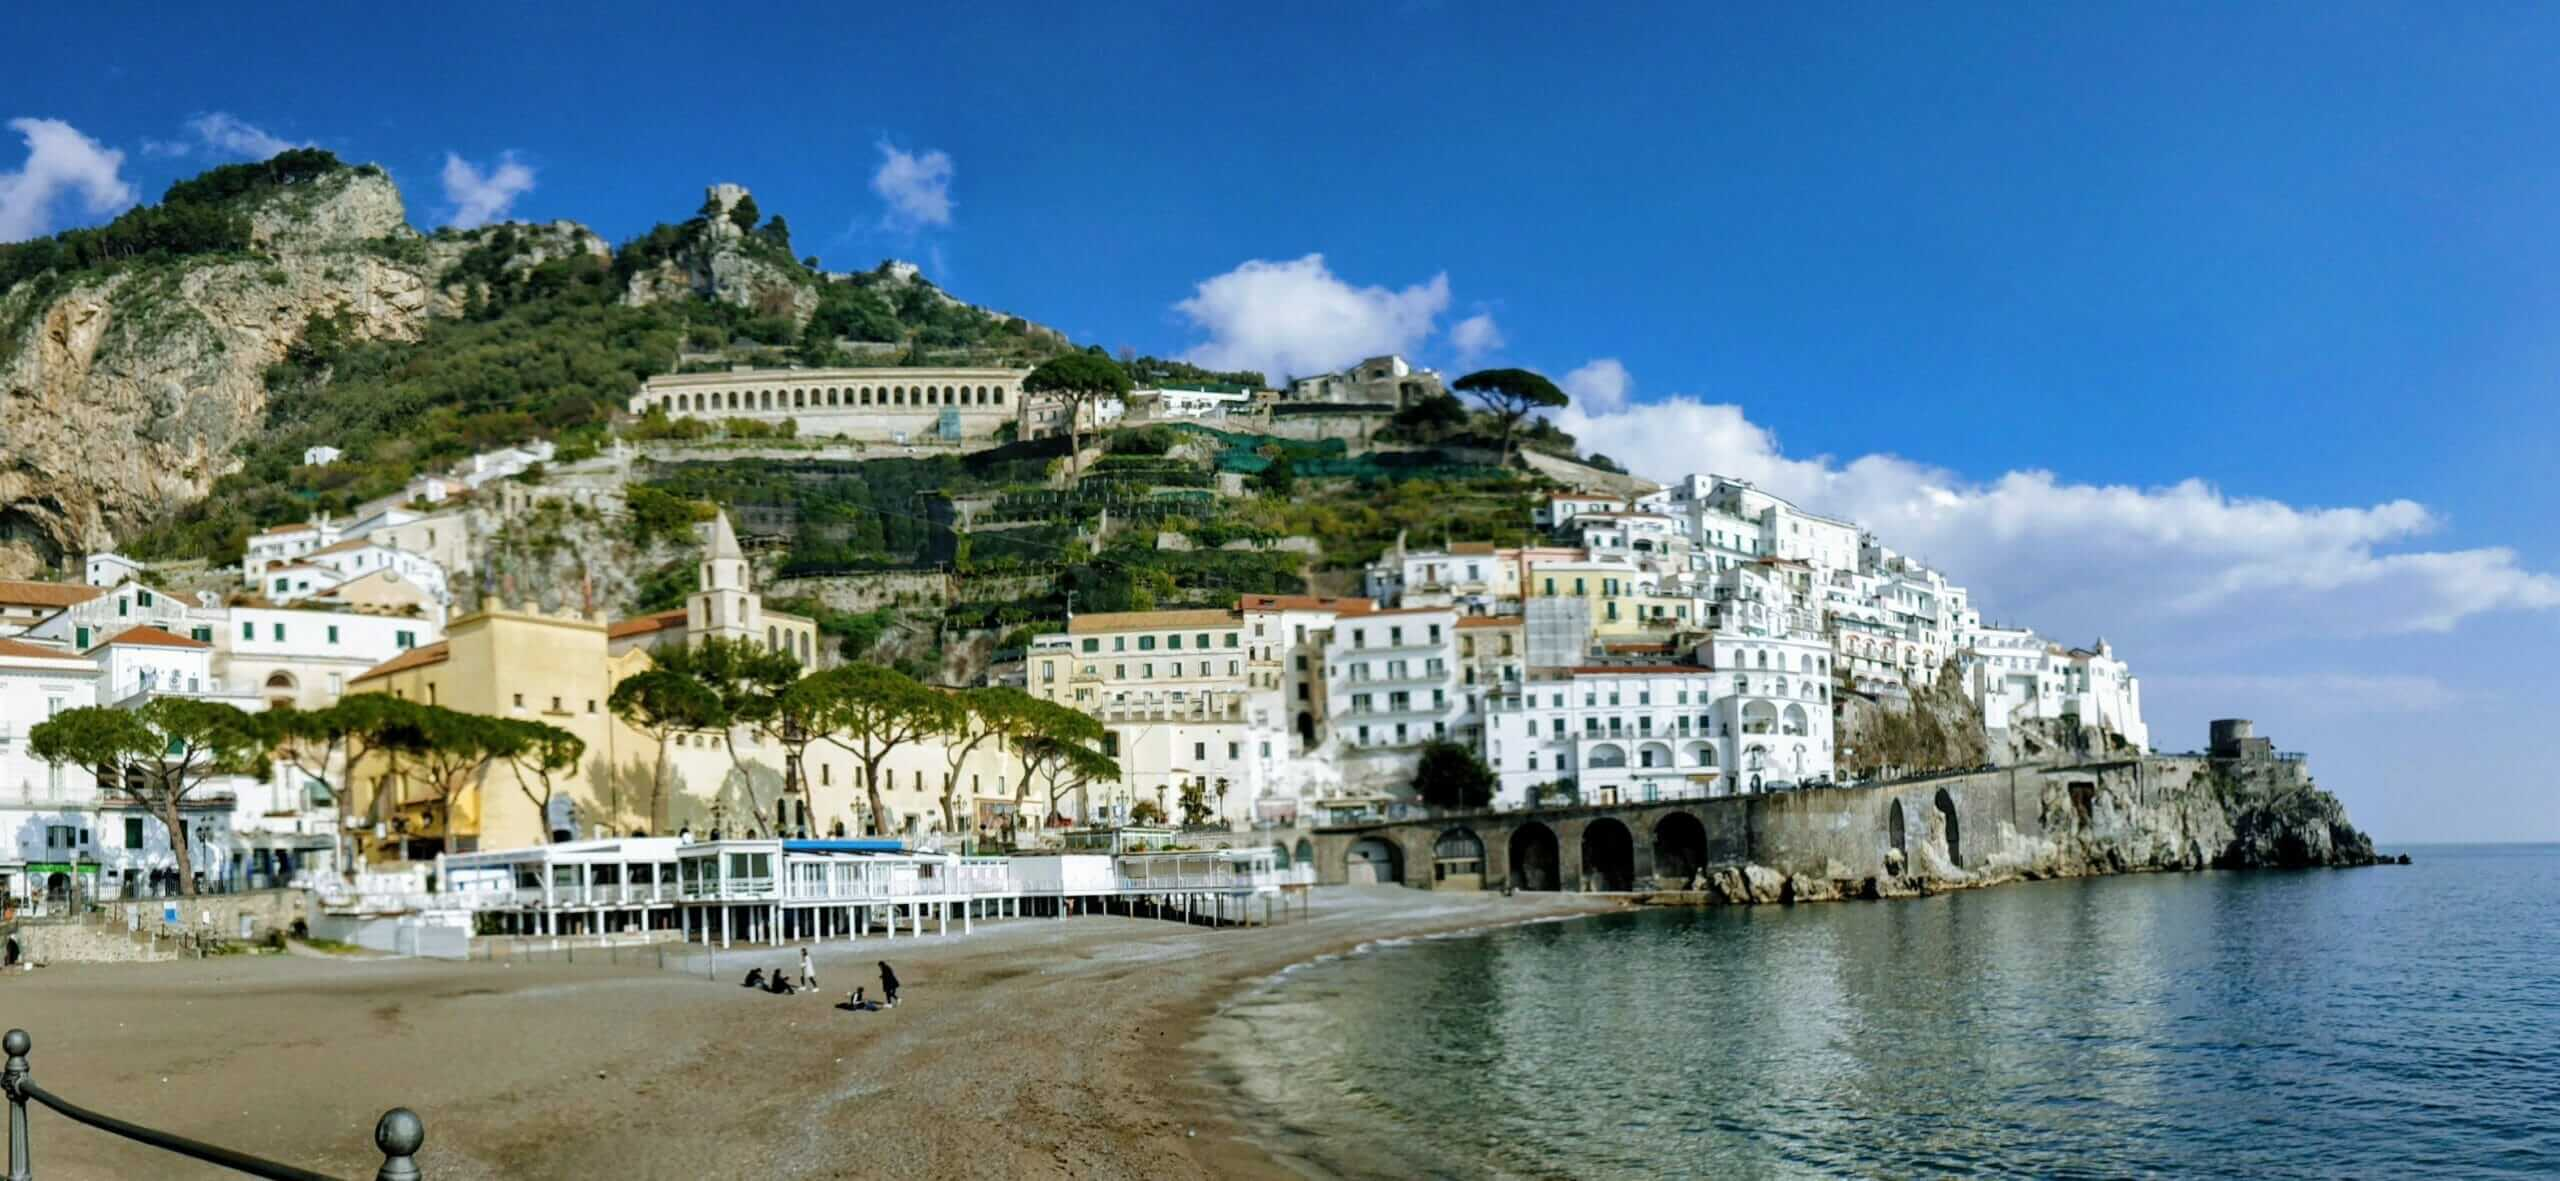 Waterfront coastline along the town of Amalfi